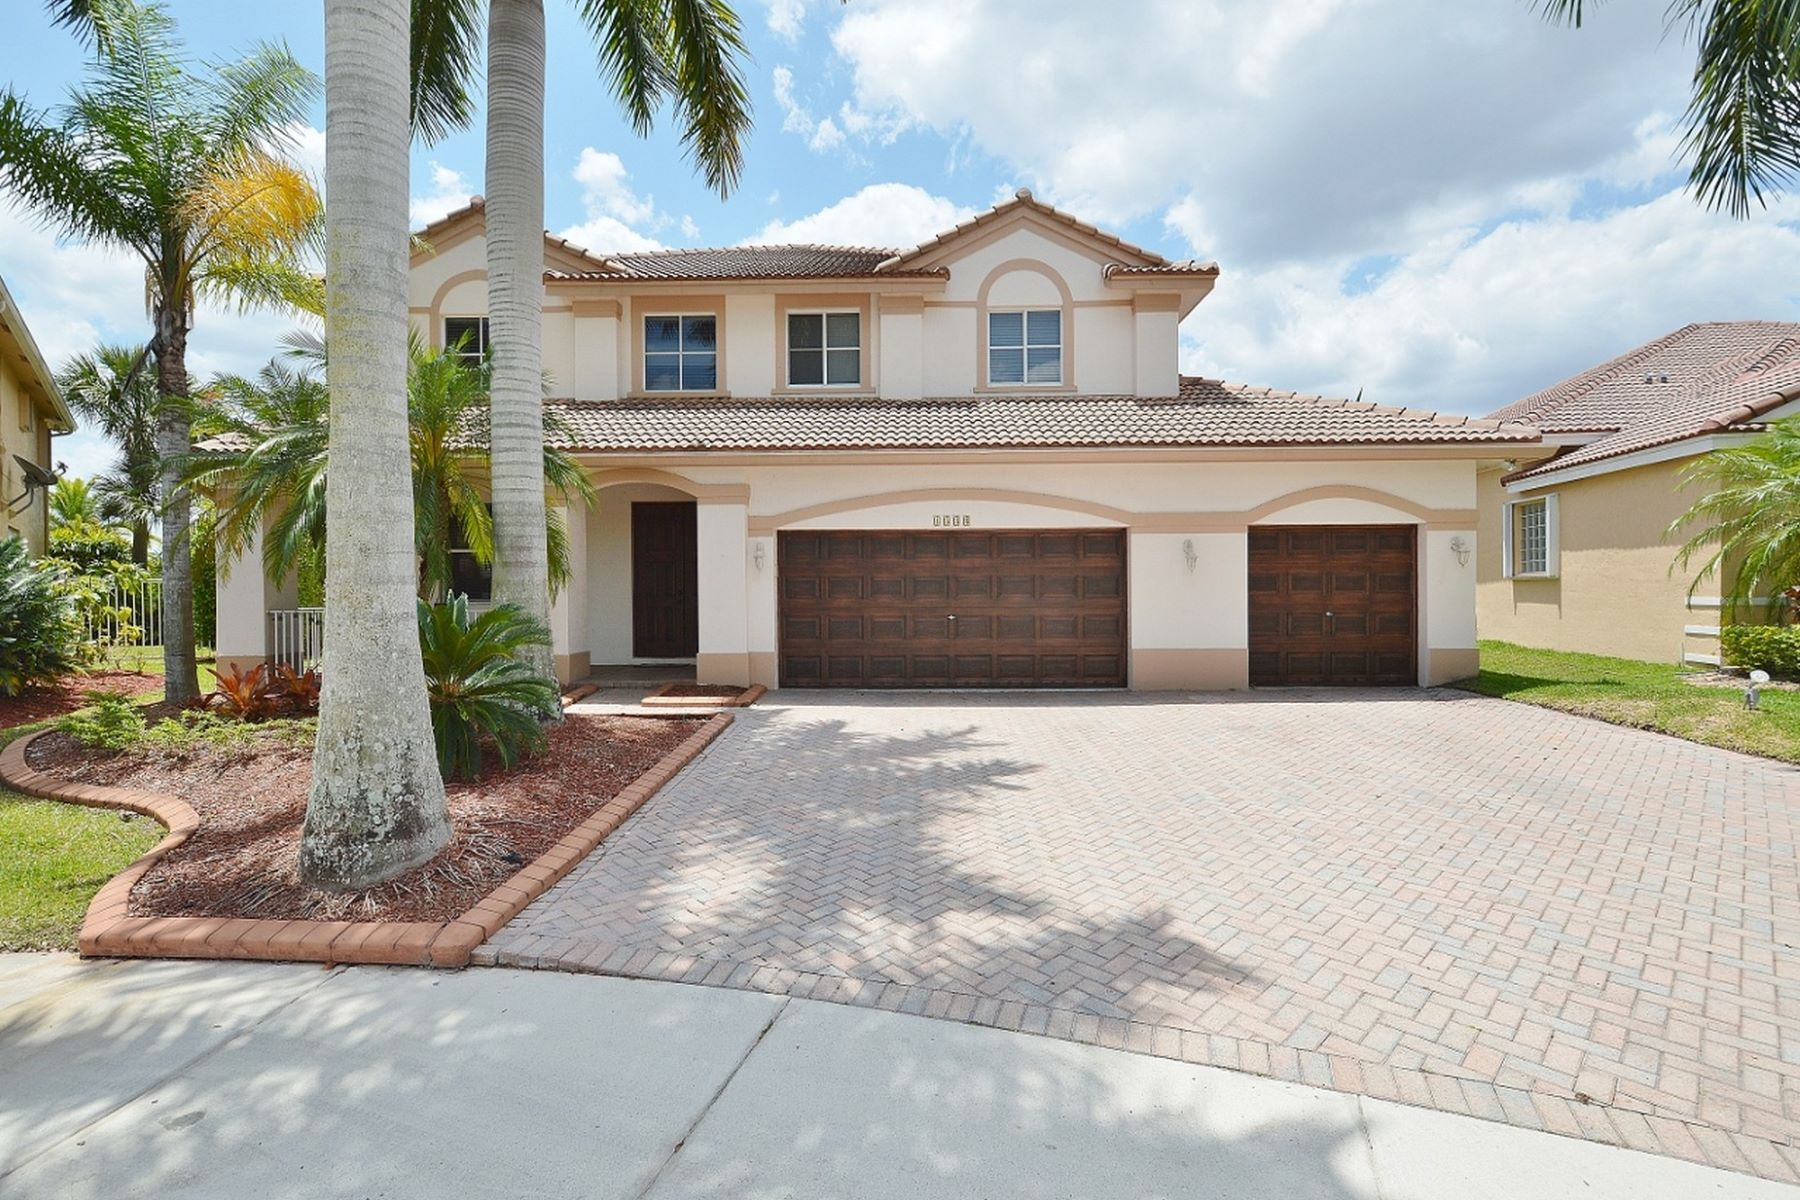 واحد منزل الأسرة للـ Rent في 1538 Cardinal Way 1538 Cardinal Way Weston, Florida 33327 United States